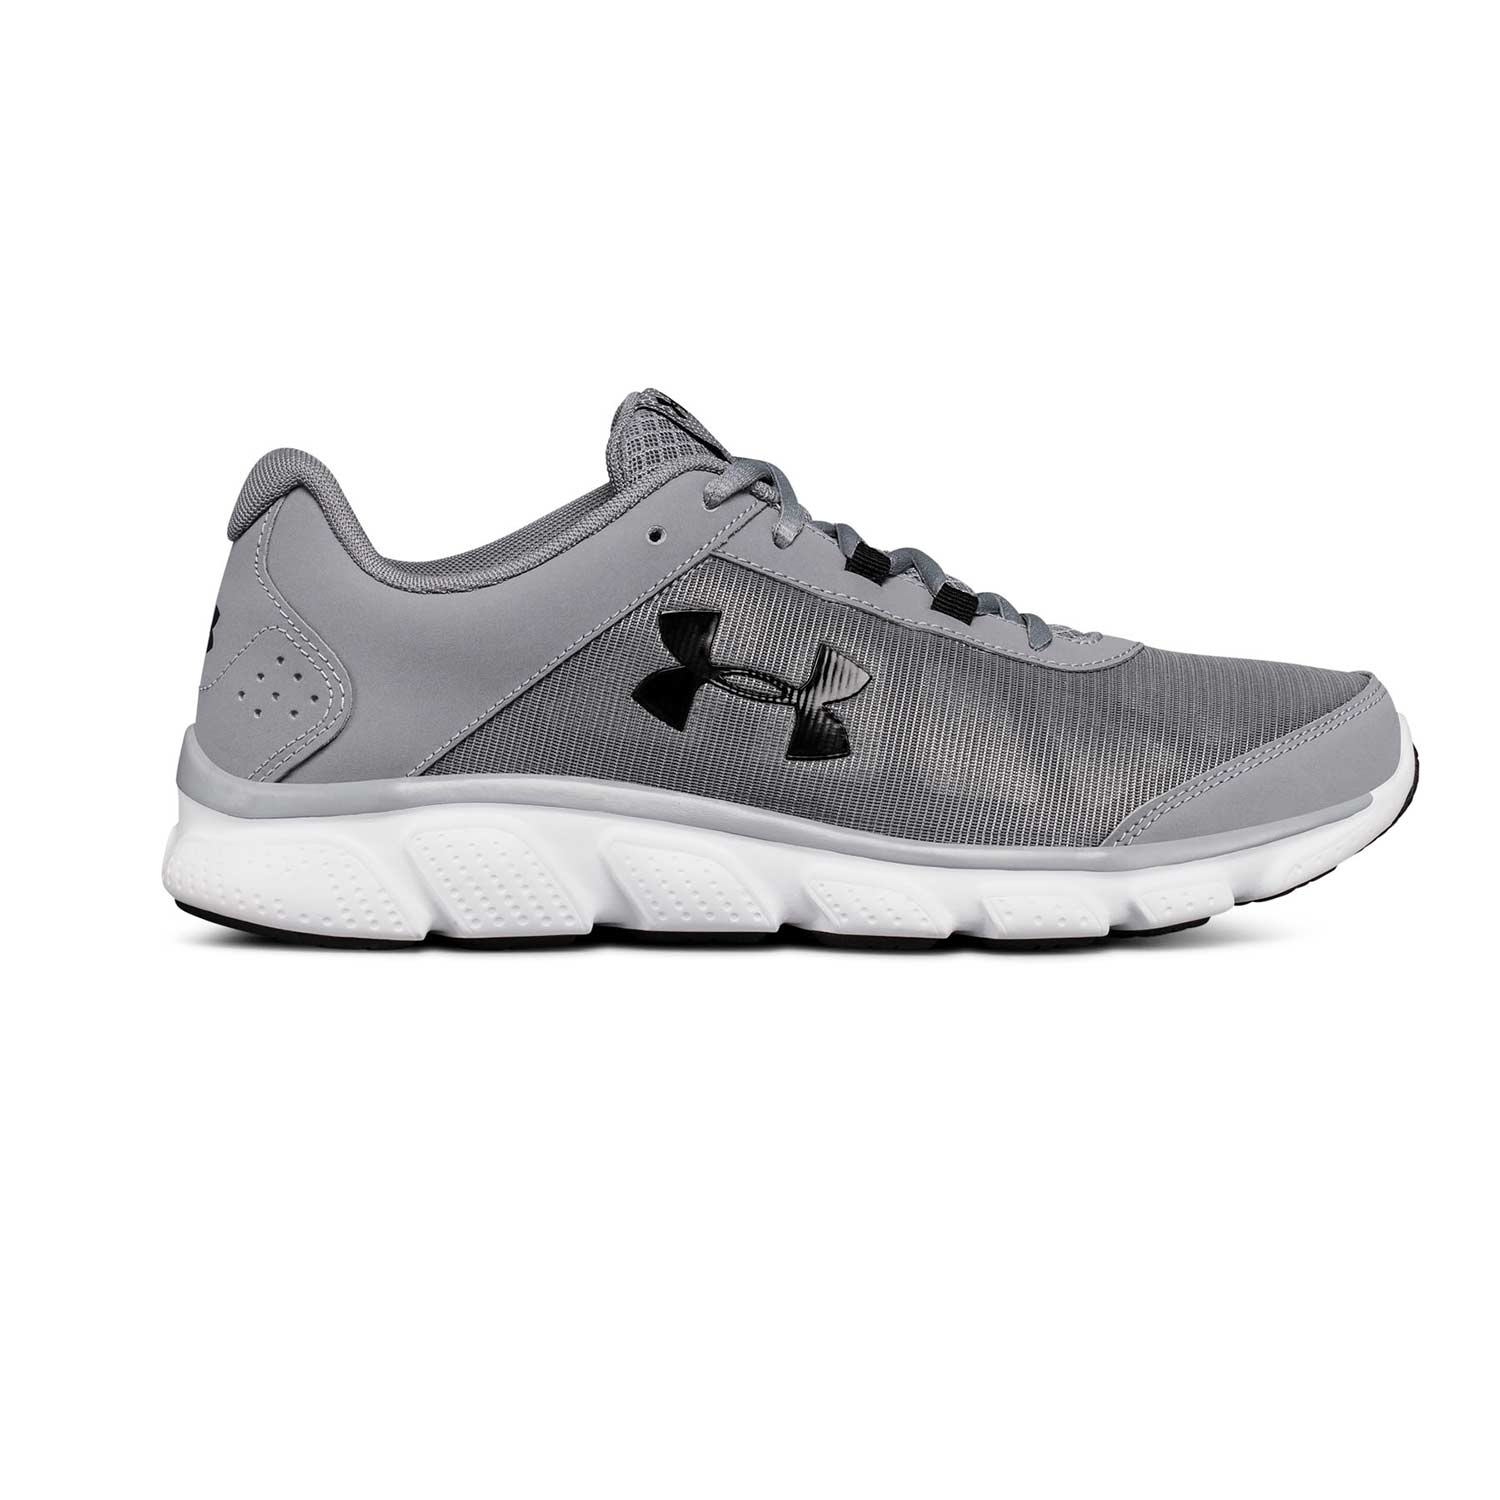 Under Armour Micro G Assert 7 Running Shoes